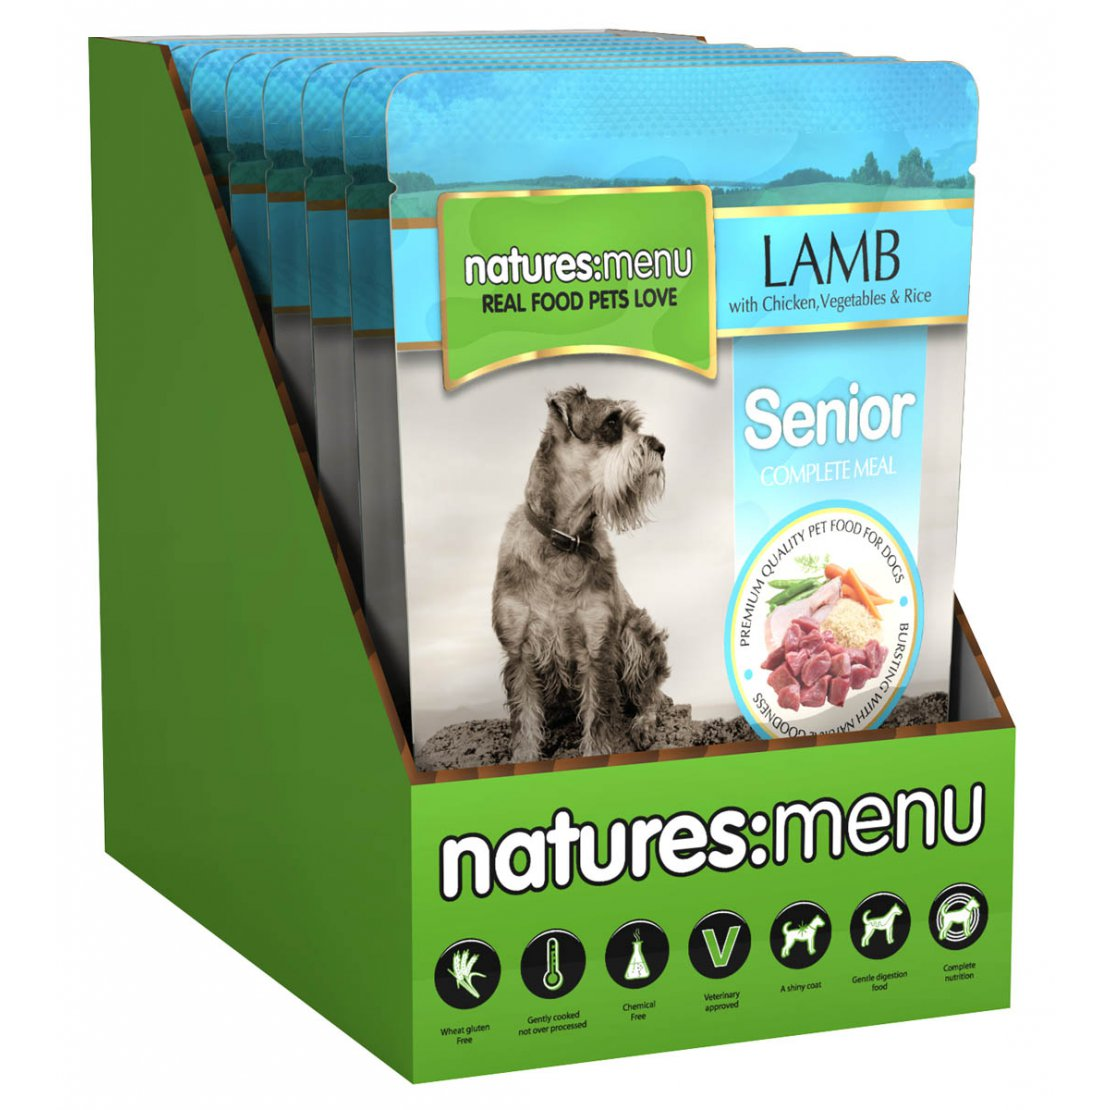 ONLY AVAILABLE FOR LOCAL DELIVERY. Natures Menu Senior Dog Food Pouch. Lamb 8pk